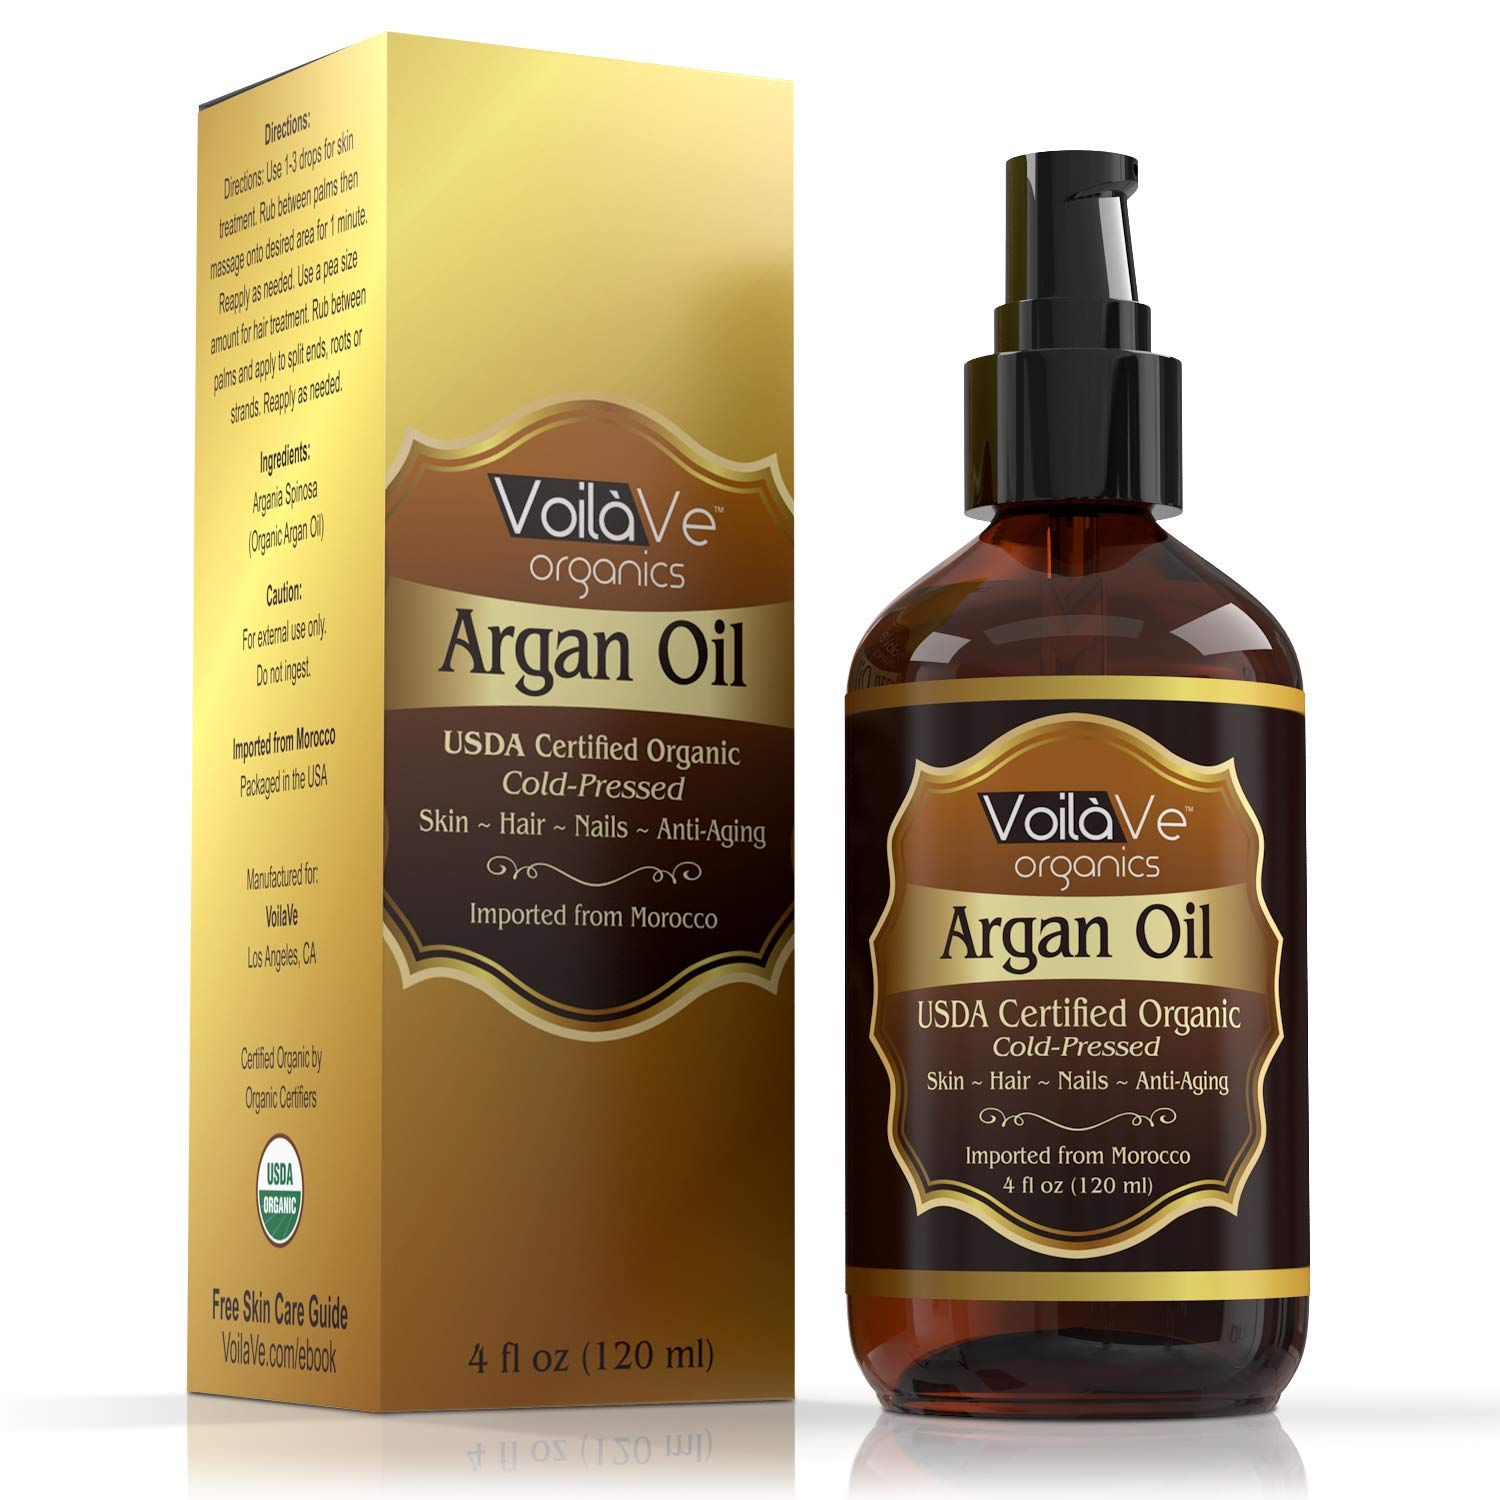 VoilaVe USDA and ECOCERT Pure Organic Moroccan Argan Oil for Skin, Nails & Hair Growth, Anti-Aging Face Moisturizer, Cold Pressed, Hair Moisturizer, Rich in Vitamin E & Carotenes, 4 fl oz by VoilaVe